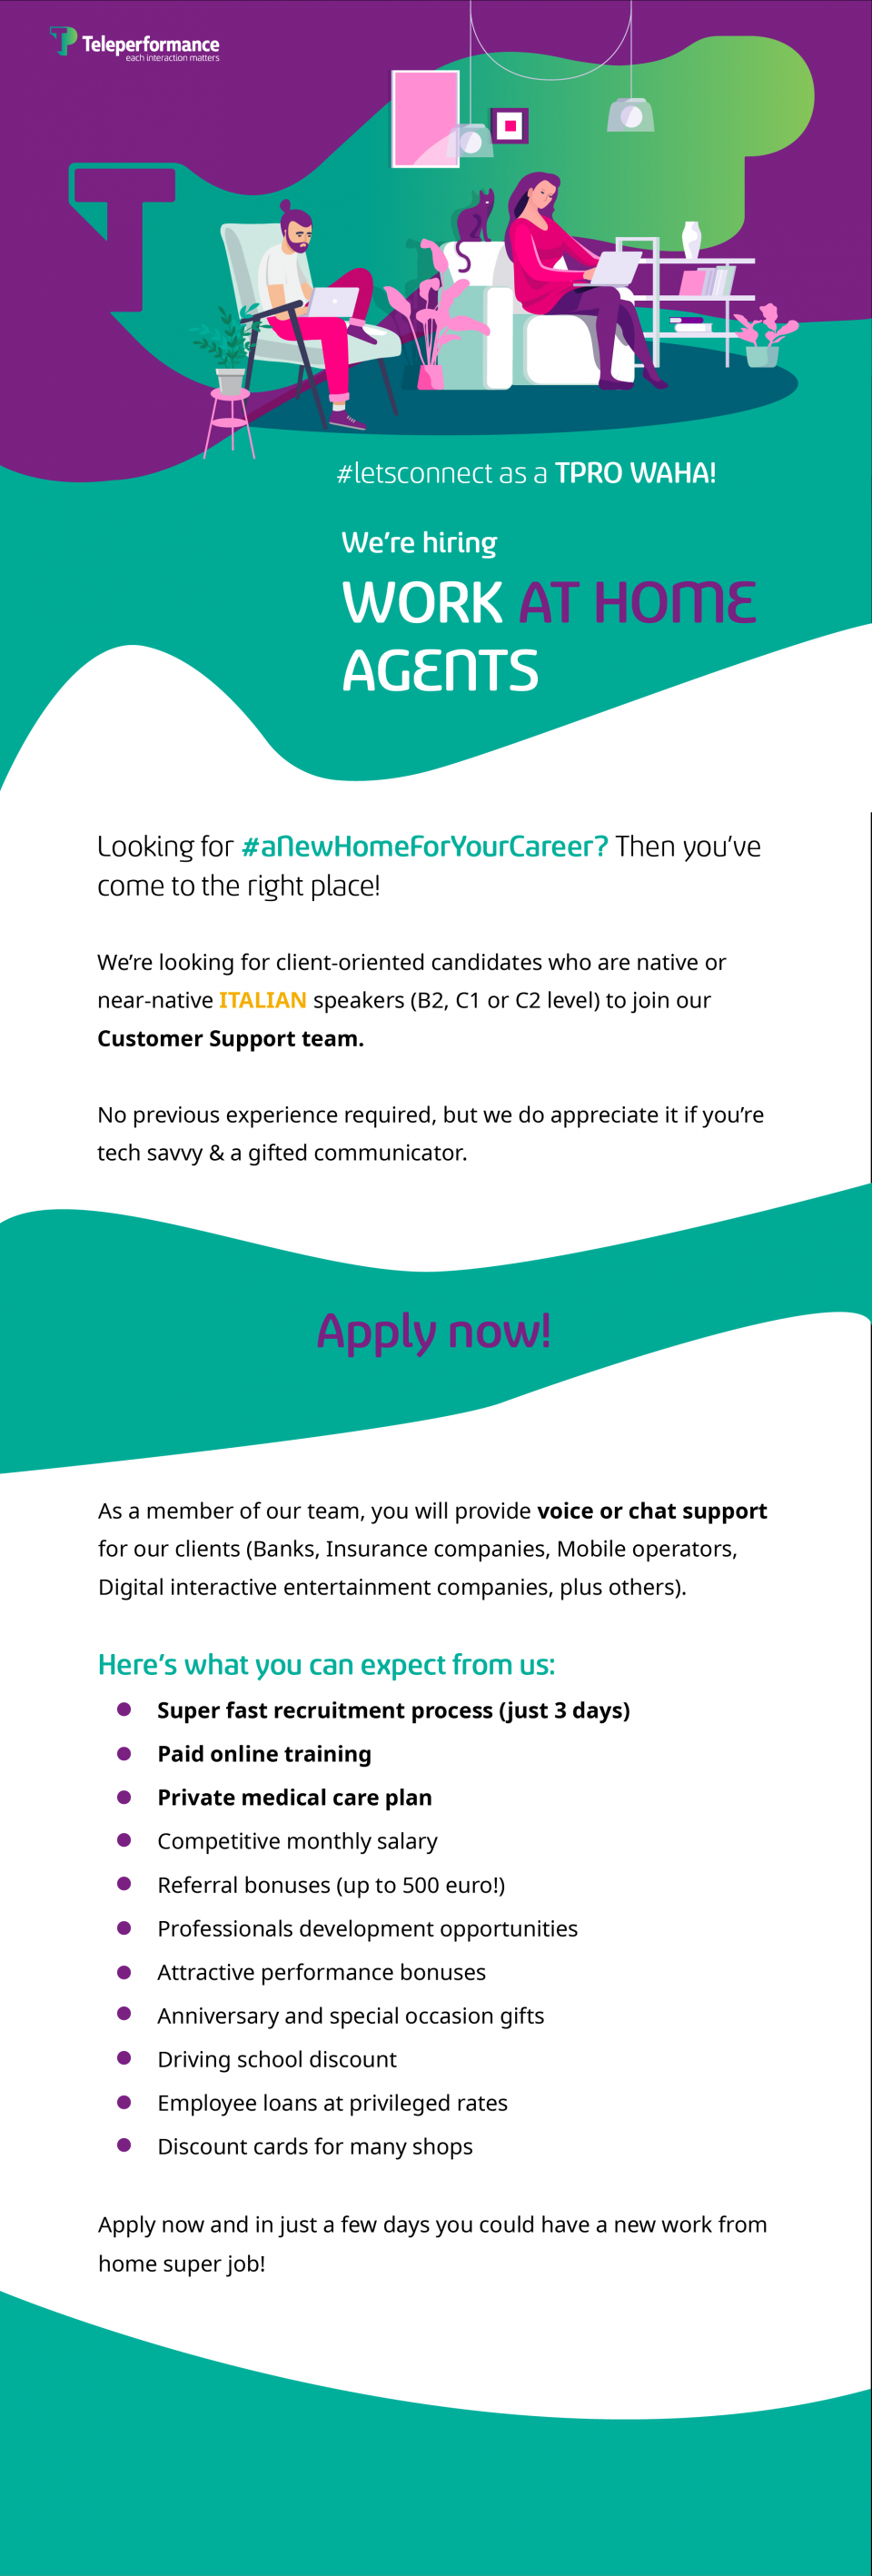 #letsconnect as a TPRO WAHA!  We're hiring Work AT HOME Agents Looking for #aNewHomeForYourCareer? Then you've come to the right place! We're looking for client-oriented candidates who are native or near-native ITALIAN speakers (B2, C1 or C2 level) to join our Customer Support team.  No previous experience required, but we do appreciate it if you're tech savvy & a gifted communicator. Apply now!  As a member of our team, you will provide voice or chat support for our clients (Banks, Insurance companies, Mobile operators, Digital interactive entertainment companies, plus others). Here's what you can expect from us: ➔ Super-fast recruitment process (just 3 days) ➔ Competitive monthly salary ➔ Attractive performance bonuses ➔ Paid online training ➔ Referral bonuses (up to 500 euro!) ➔ Professionals development opportunities ➔ Private medical insurance ➔ Anniversary and special occasion gifts ➔ Driving school discount ➔ Employee loans at privileged rates ➔ Discount cards for many shops Apply now and in just a few days you could have a new work from home super job!